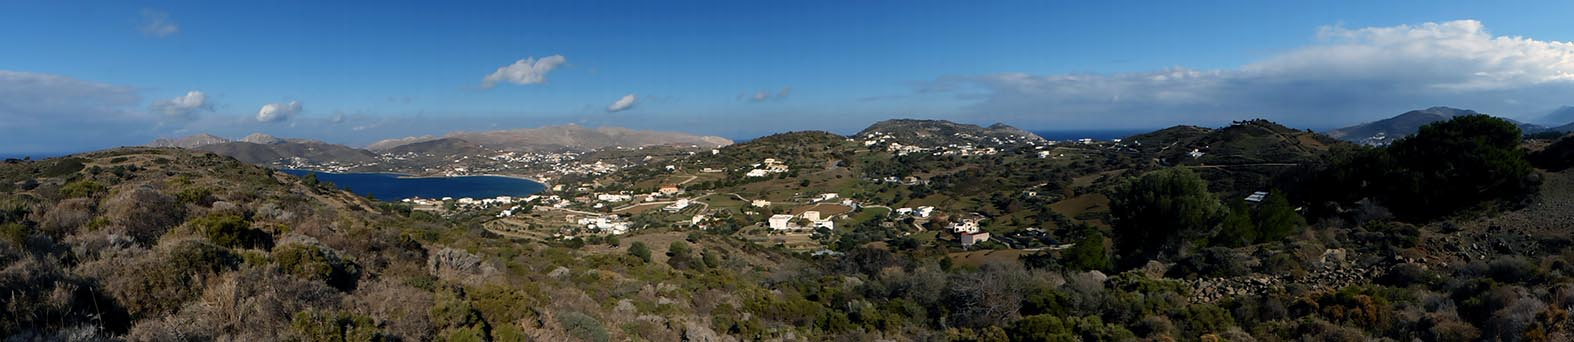 Panorama of Dhrymonas and Ghorna, Leros, Greece - Jen Funk Weber